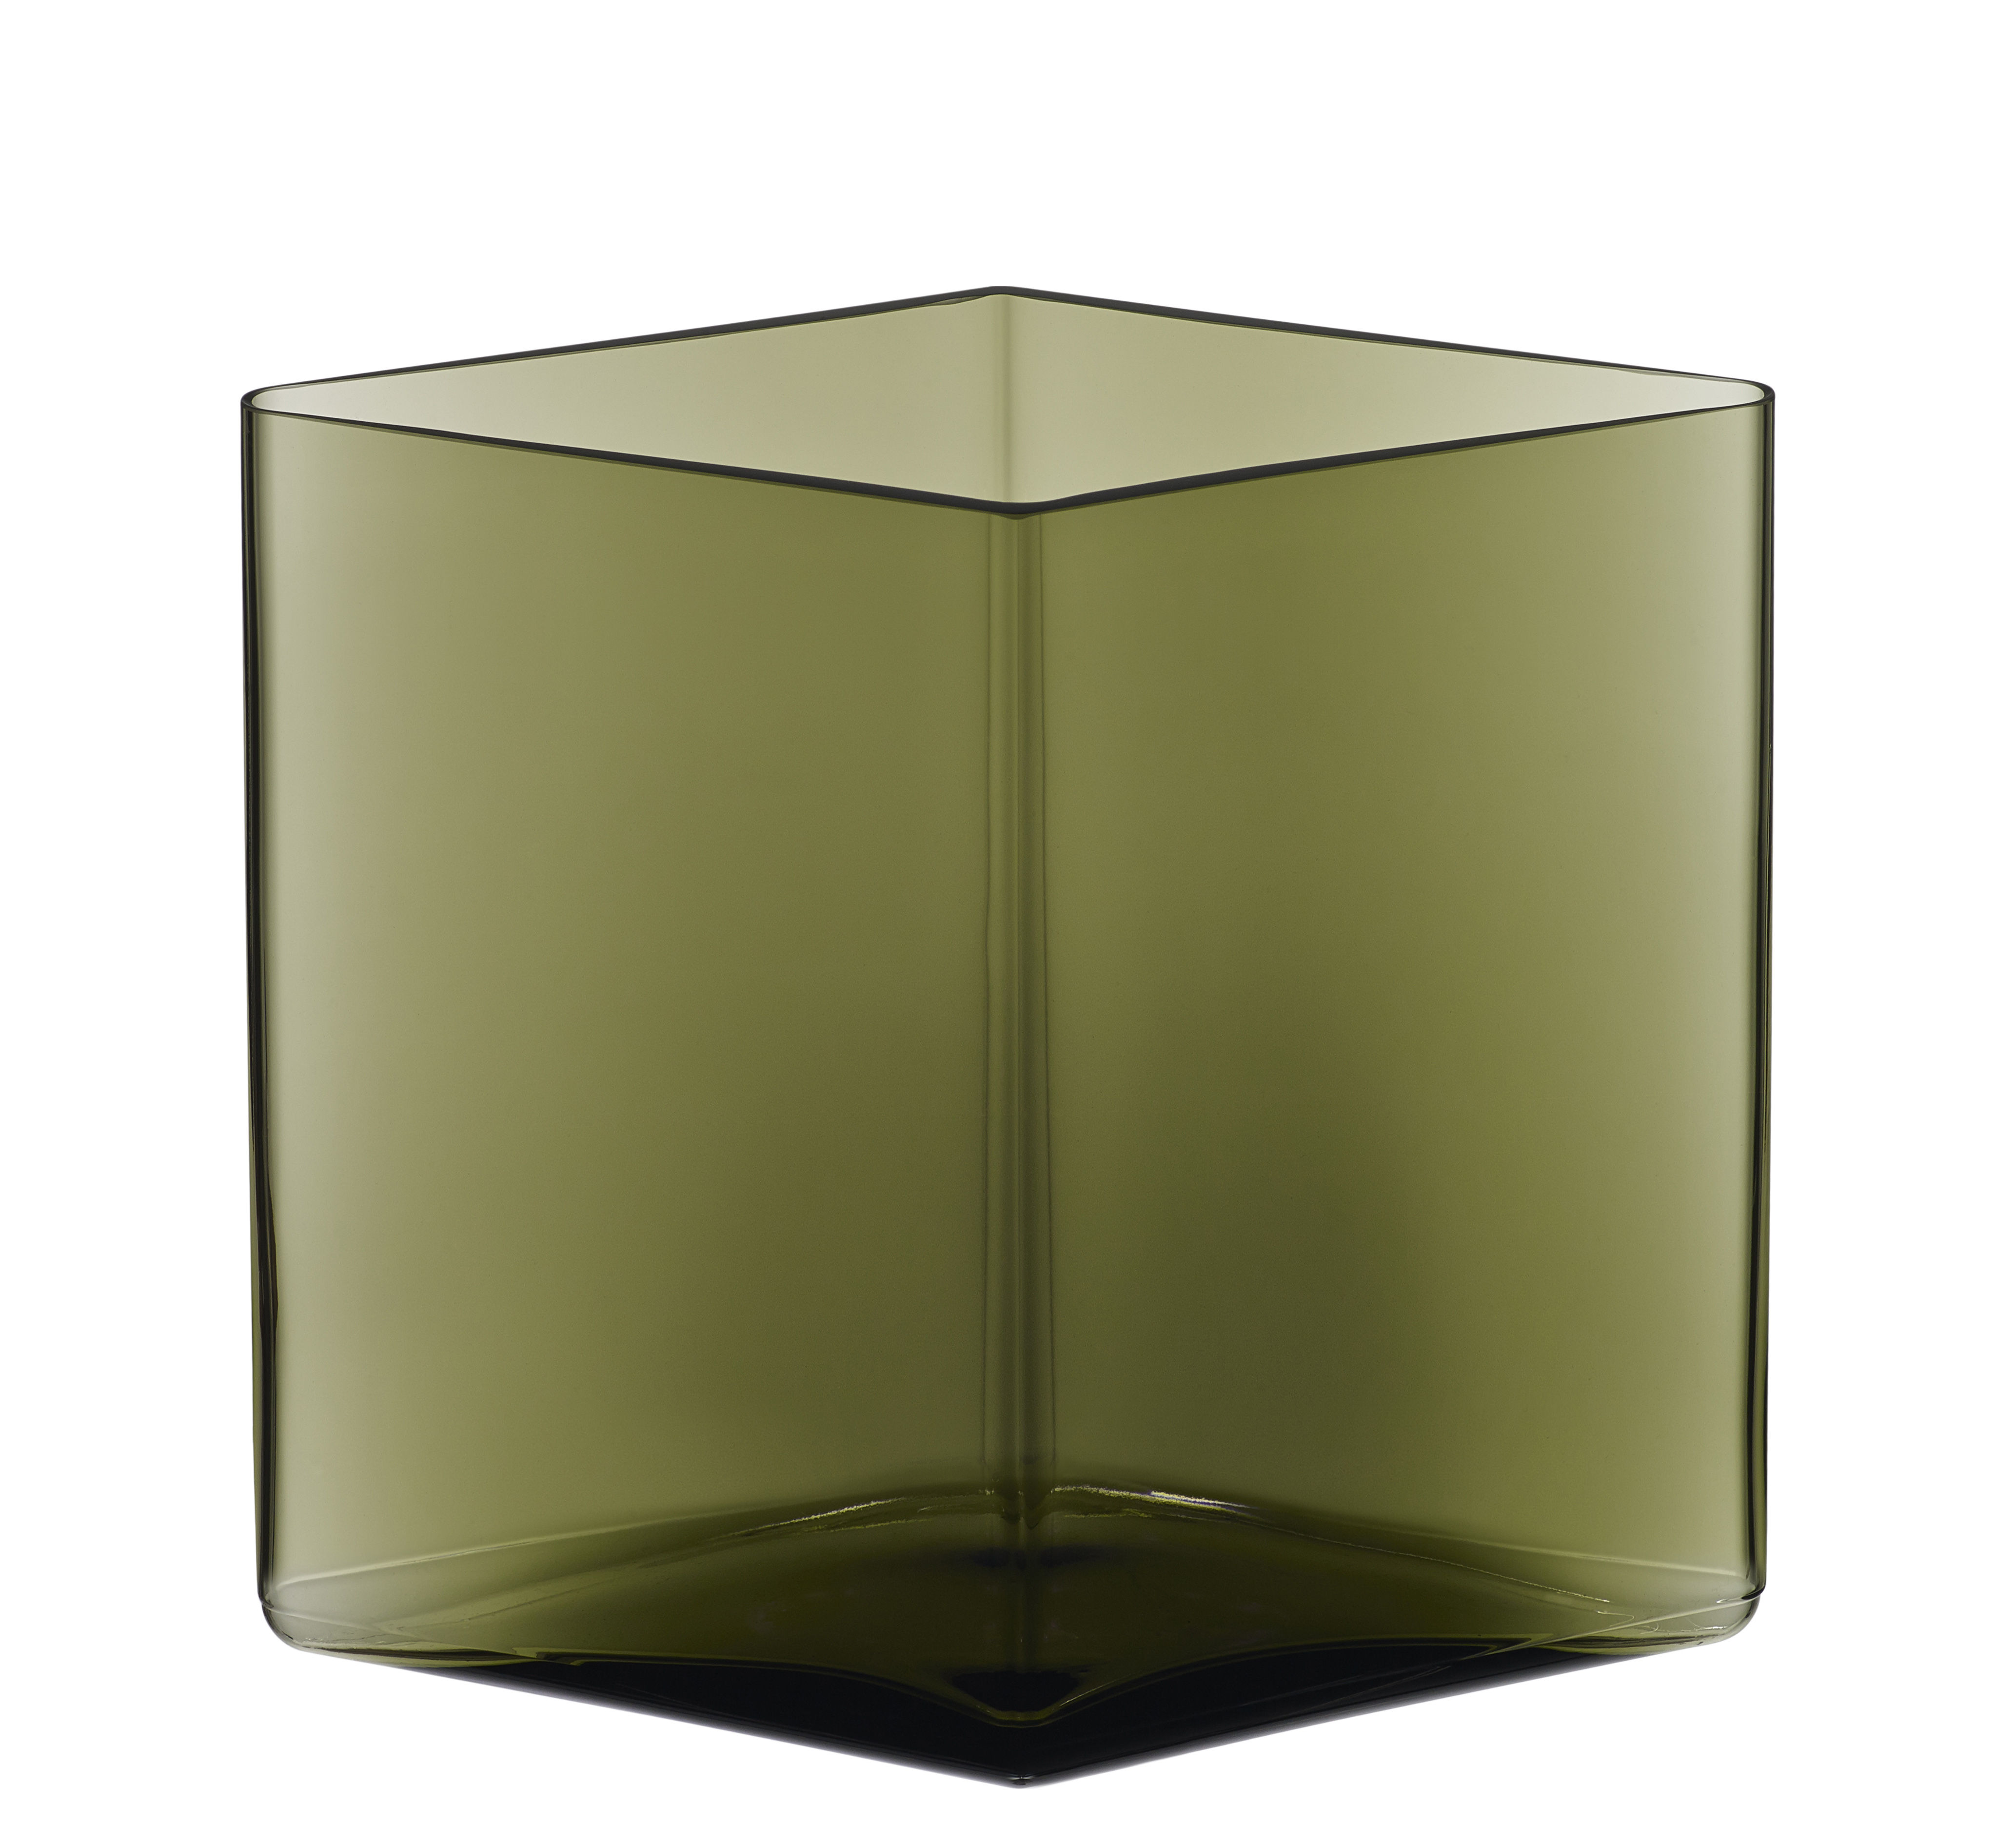 Decoration - Vases - Ruutu Vase - by Ronan & Erwan Bouroullec / 20,5 x 18 cm by Iittala - Moss green - Mouth blown glass